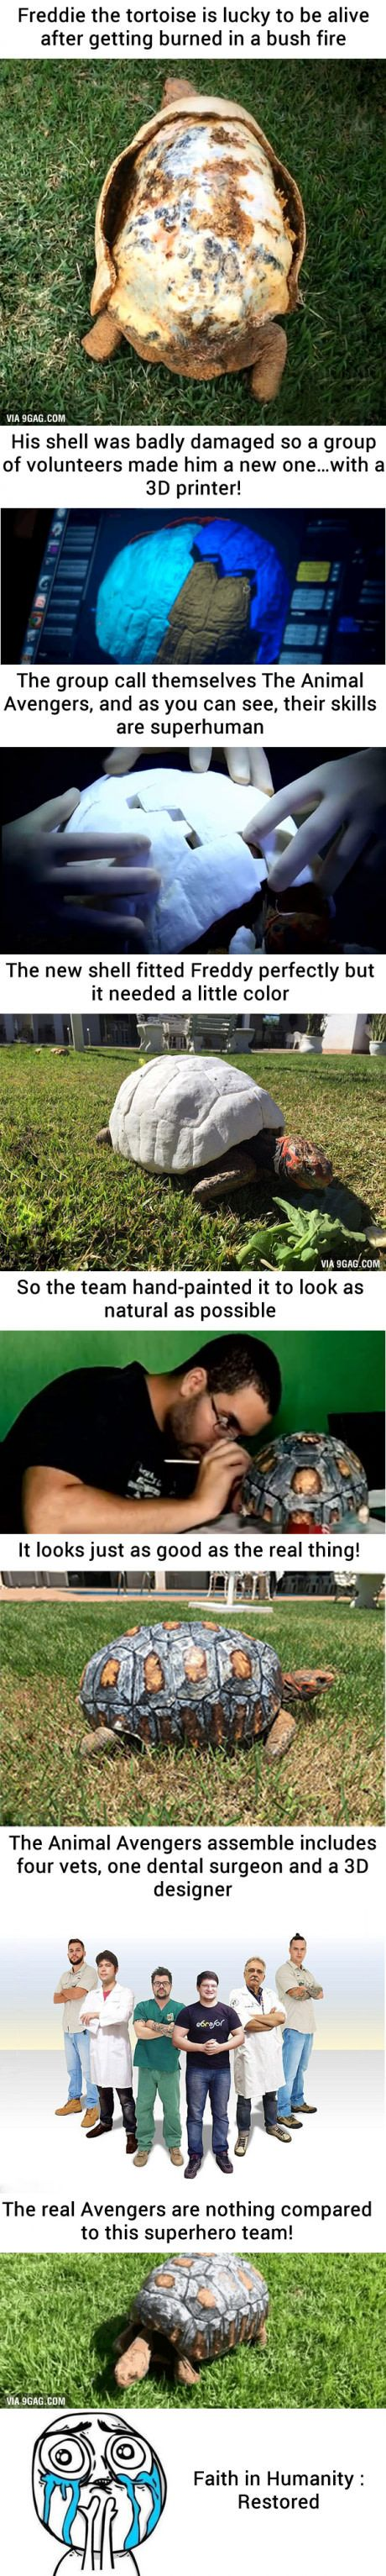 The Best Tortoises Ideas On Pinterest Cute Tortoise Cute - Tortoise gets 3d printed shell